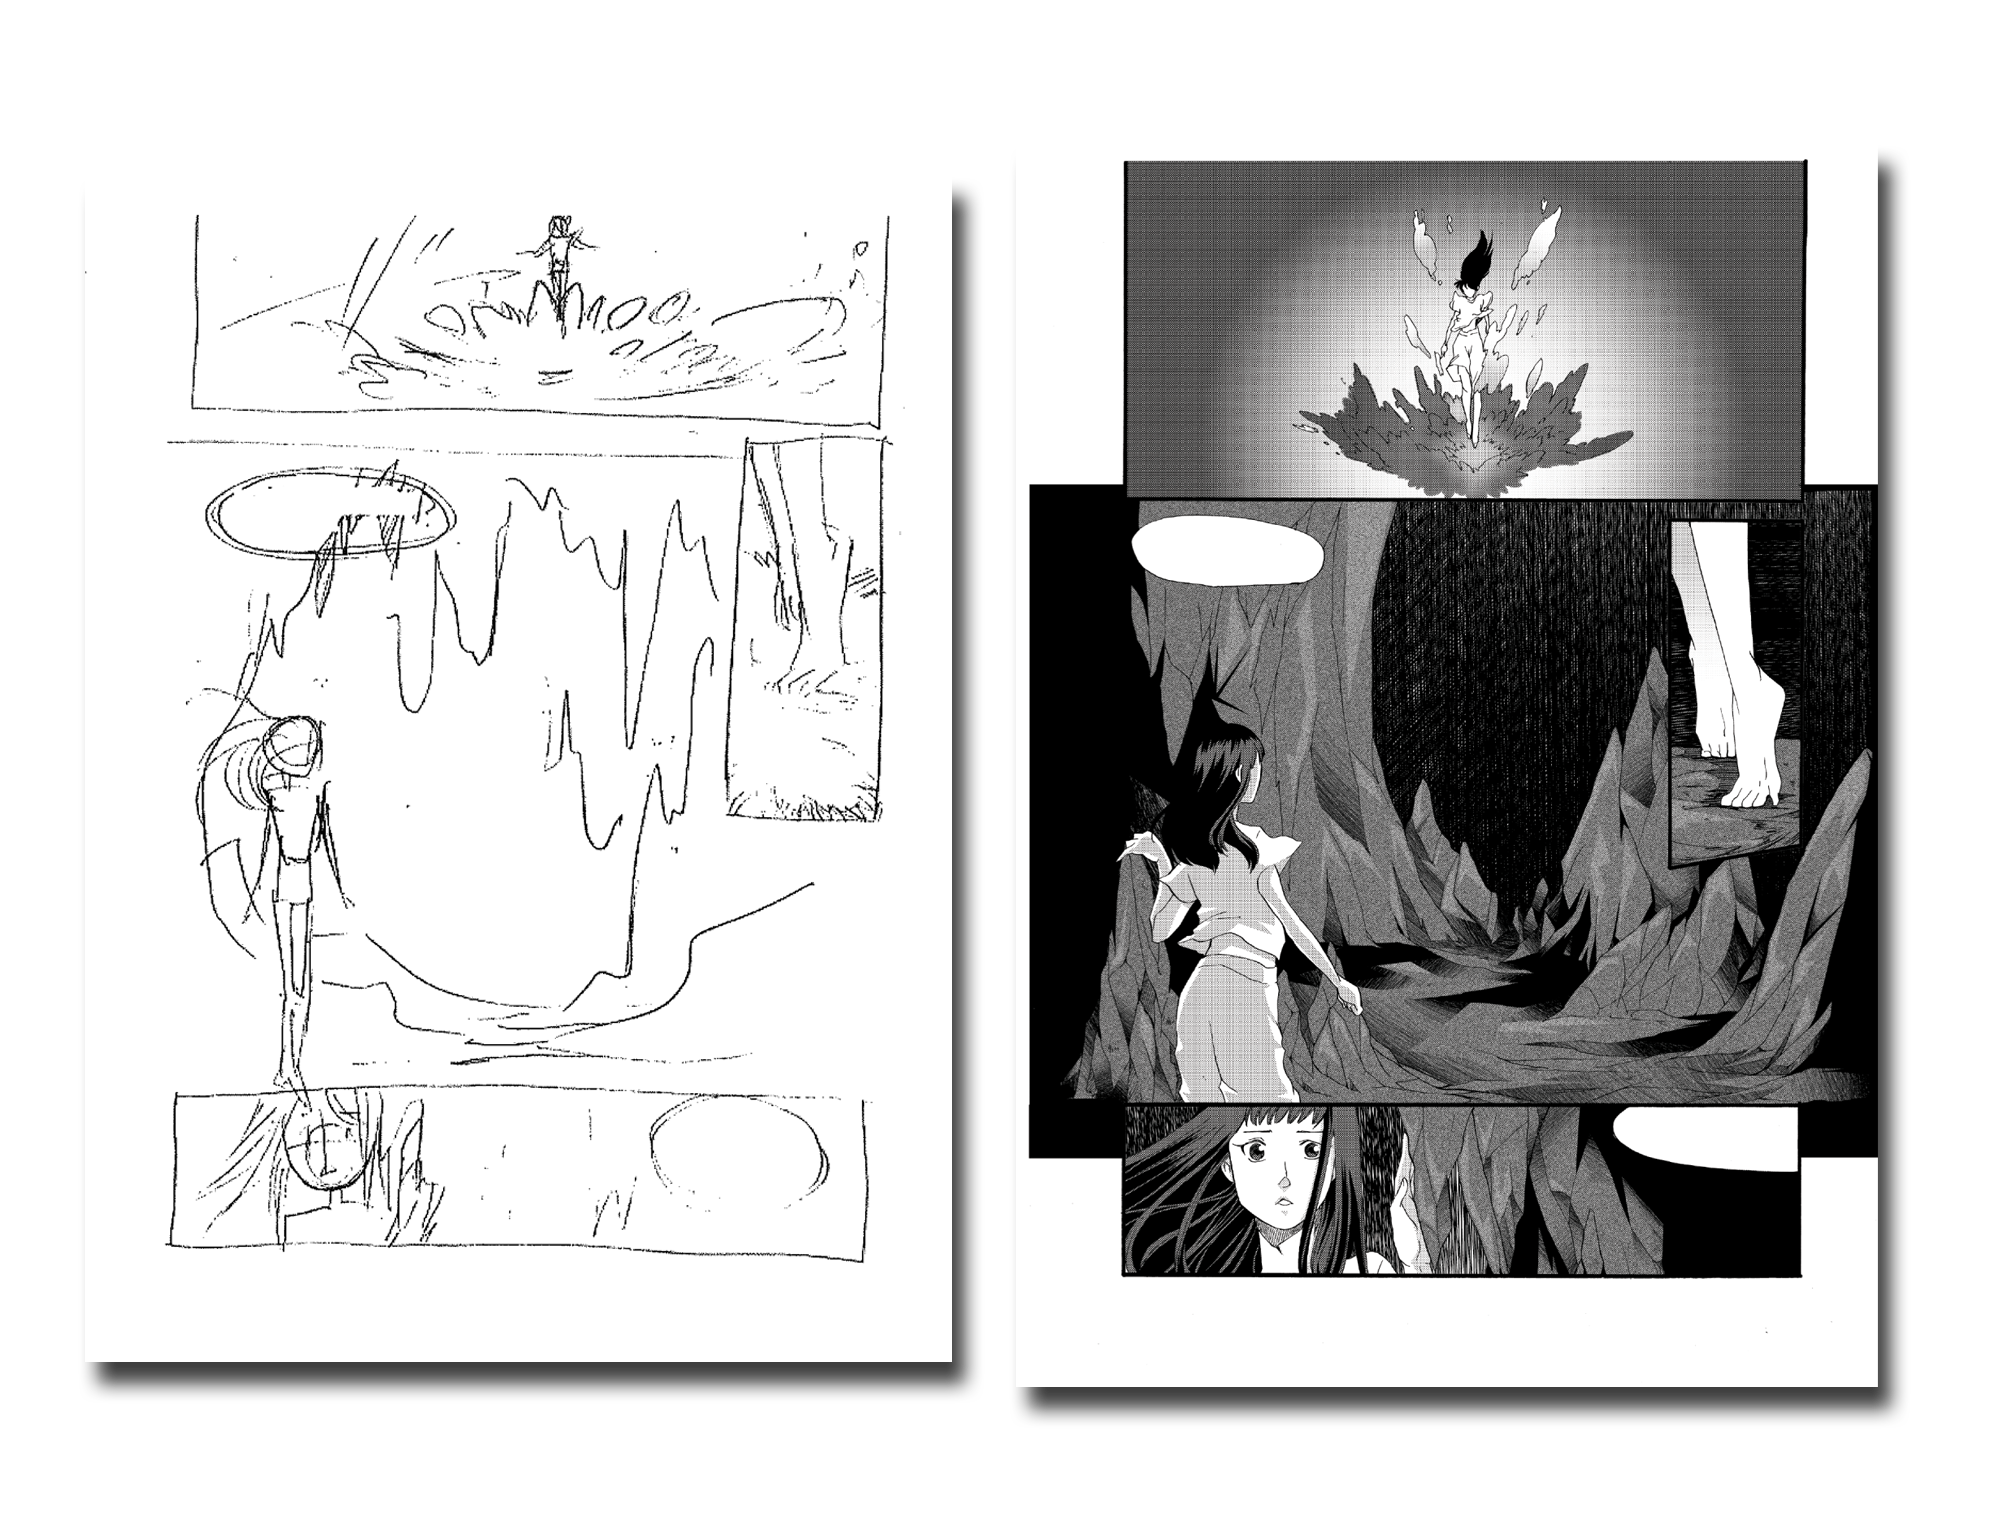 - I laid out all eight books in the series. Many speech bubbles needed to be expanded to fit english text. My job was to remain faithful to the artist's work and to have any alterations remain completely imperceptible on the finished page. I would fix errors in halftone shading and as needed in the line-art. I also aided in story development and tracking the lore throughout the project.